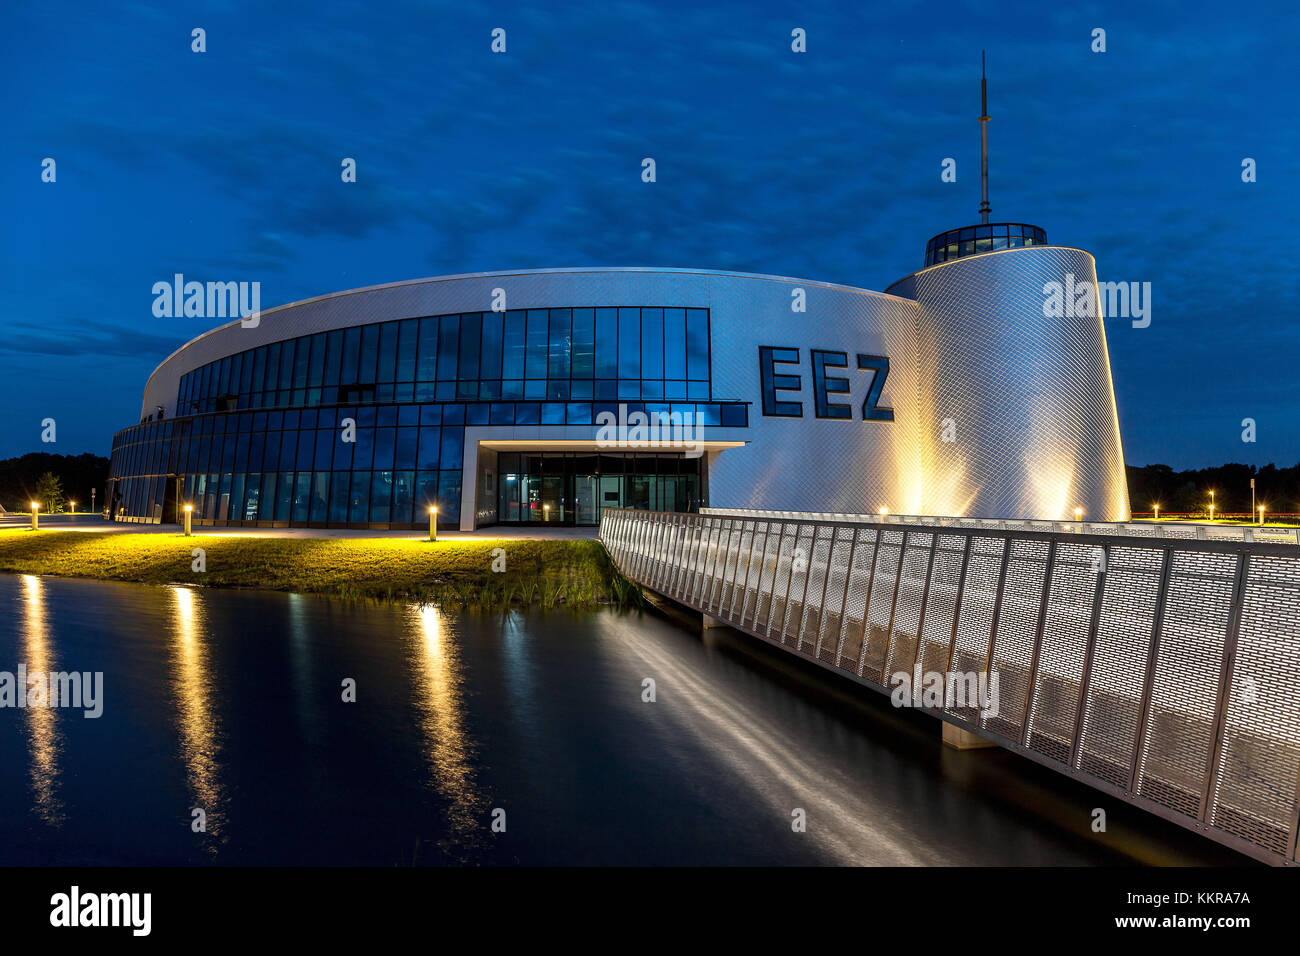 The Energie Erlebnis Zentrum Aurich is a modern centre about energy and it's usage. - Stock Image